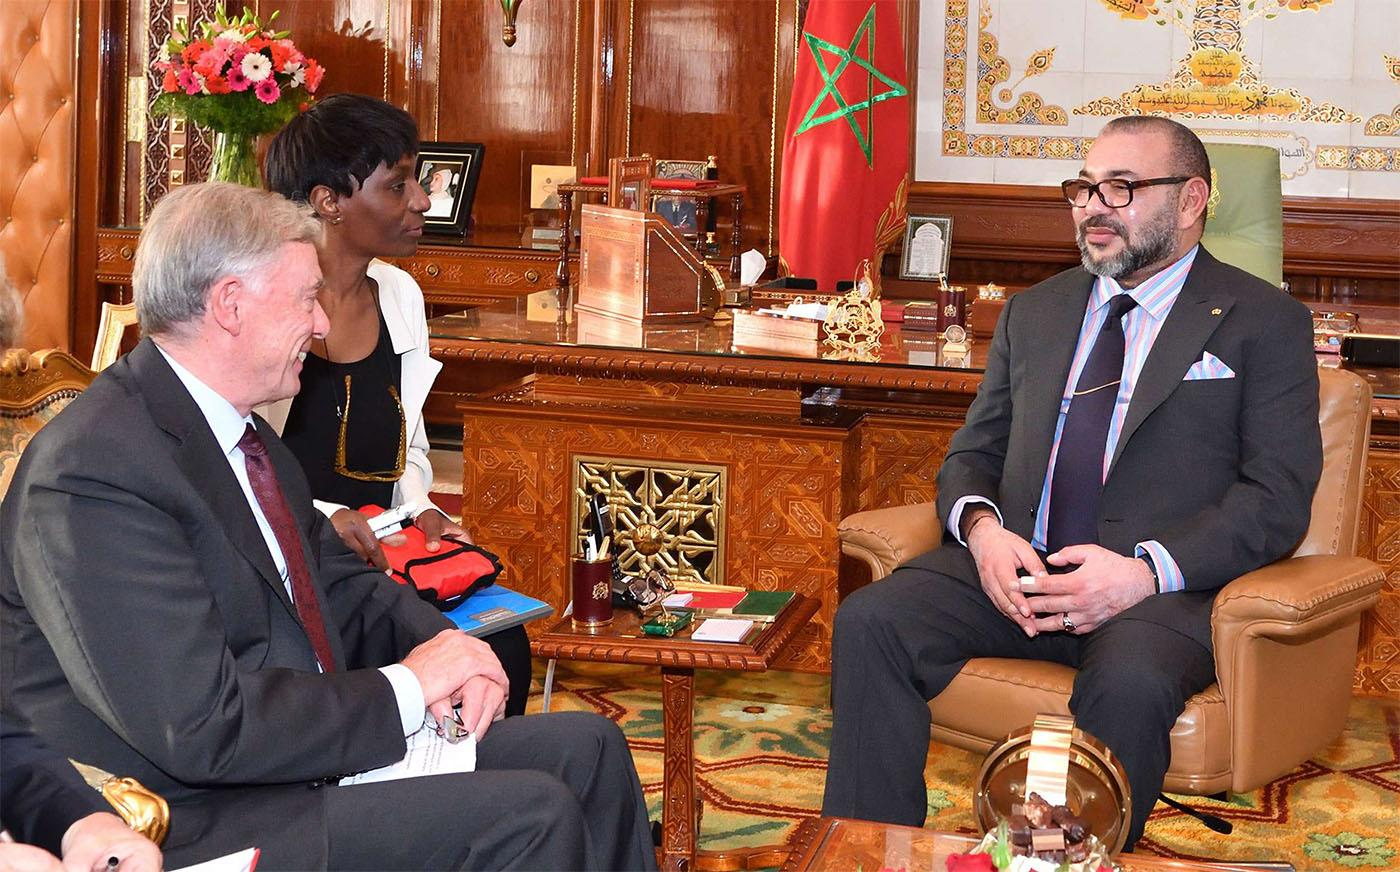 Moroccan King Mohammed VI, right, confers with UN envoy Horst Kohler at the Palace in Rabat